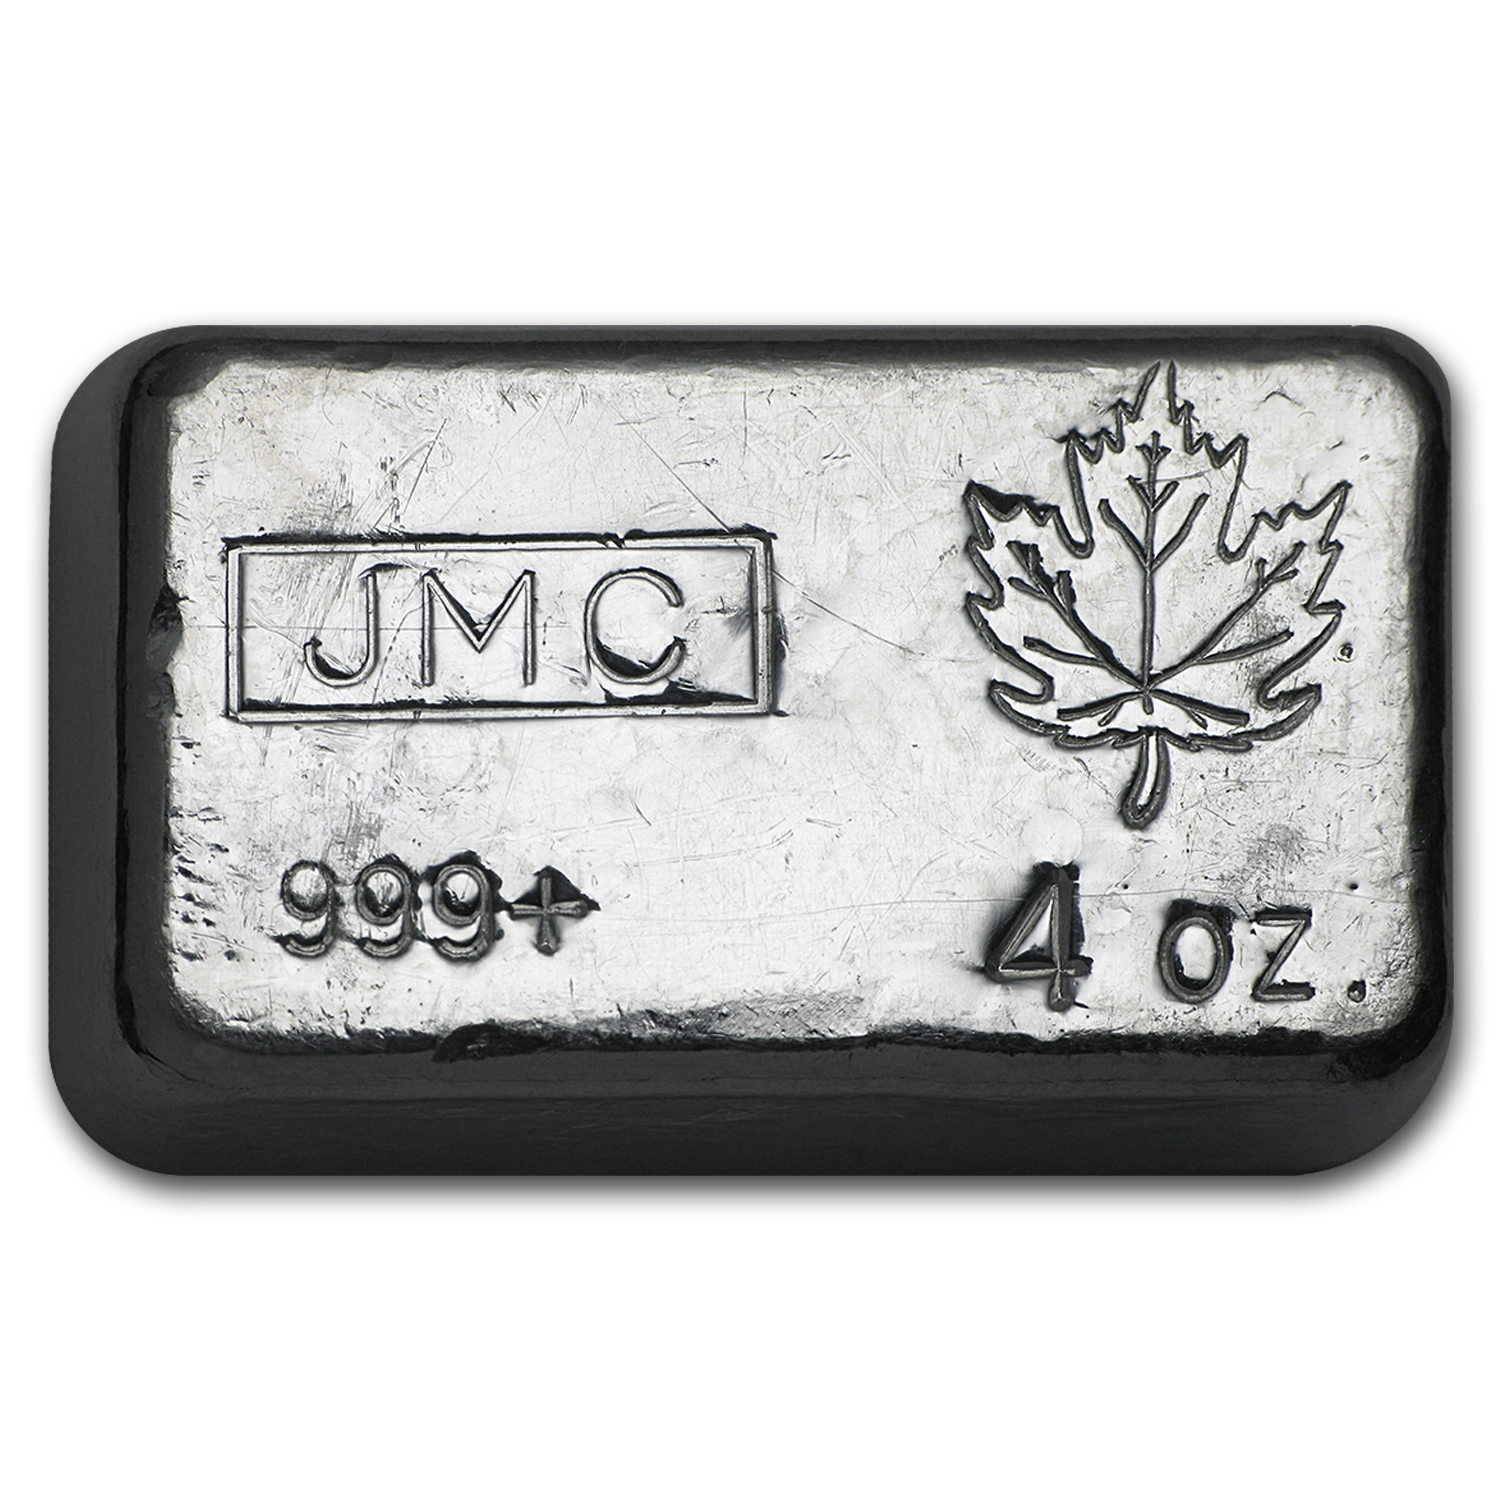 4 oz Silver Bar - Johnson Matthey Canada (Poured, Maple Leaf)